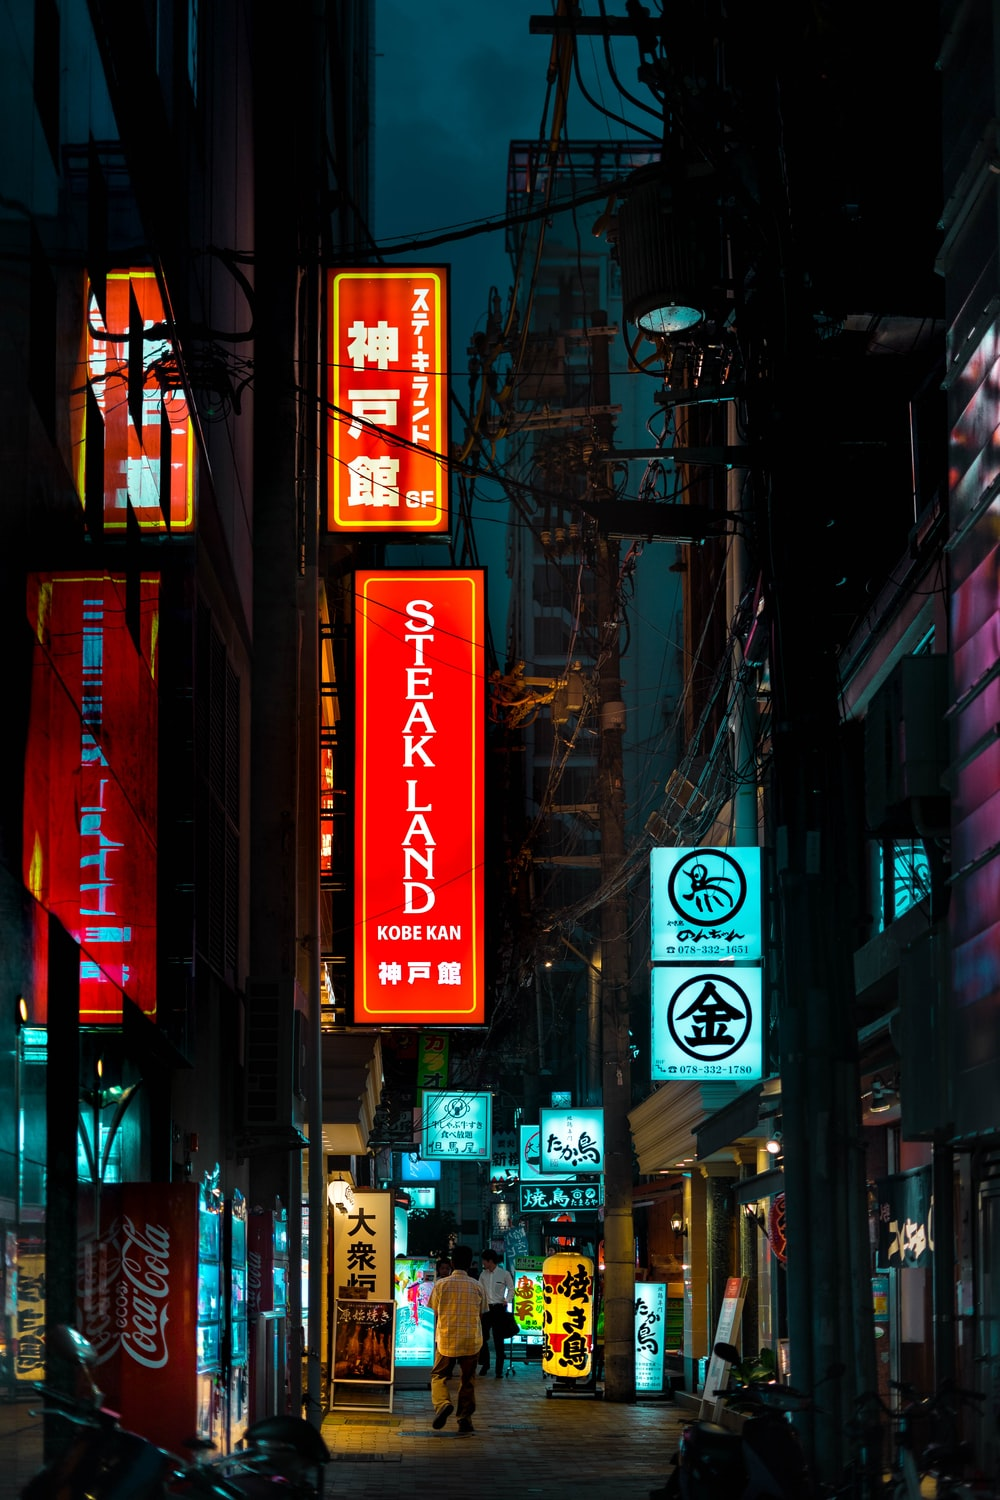 red kanji text signage on brown building during daytime